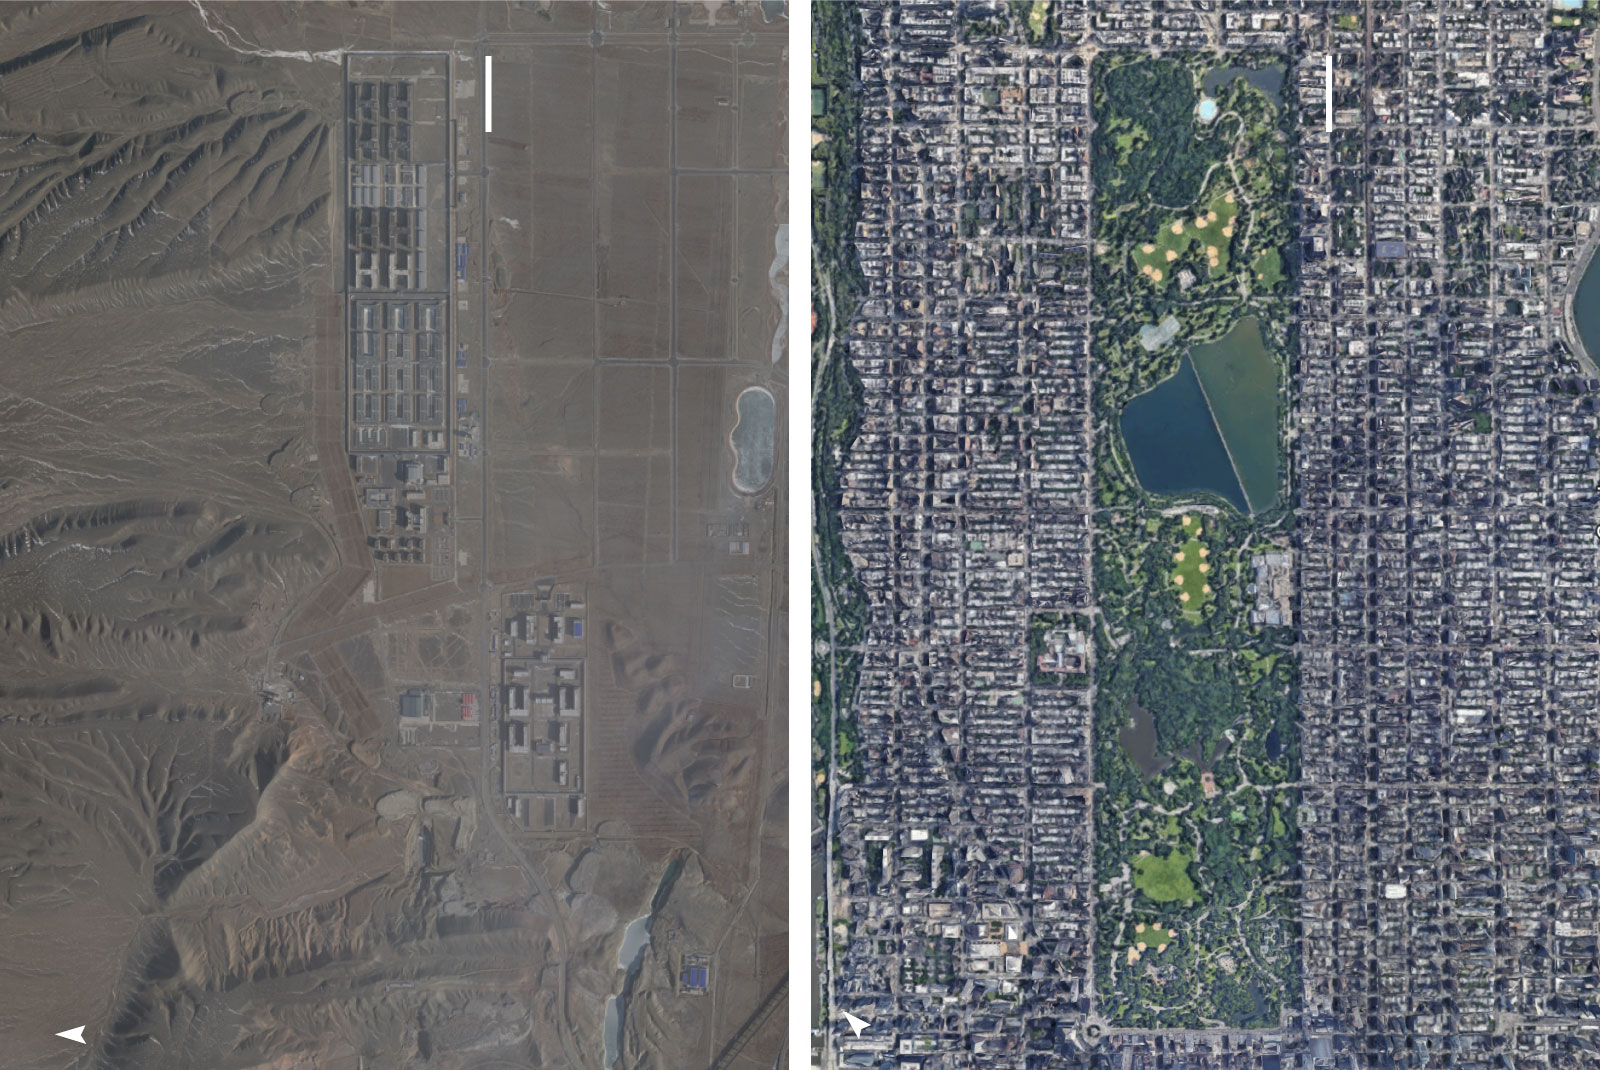 Satellite images comparing the size of Dabancheng to Central Park